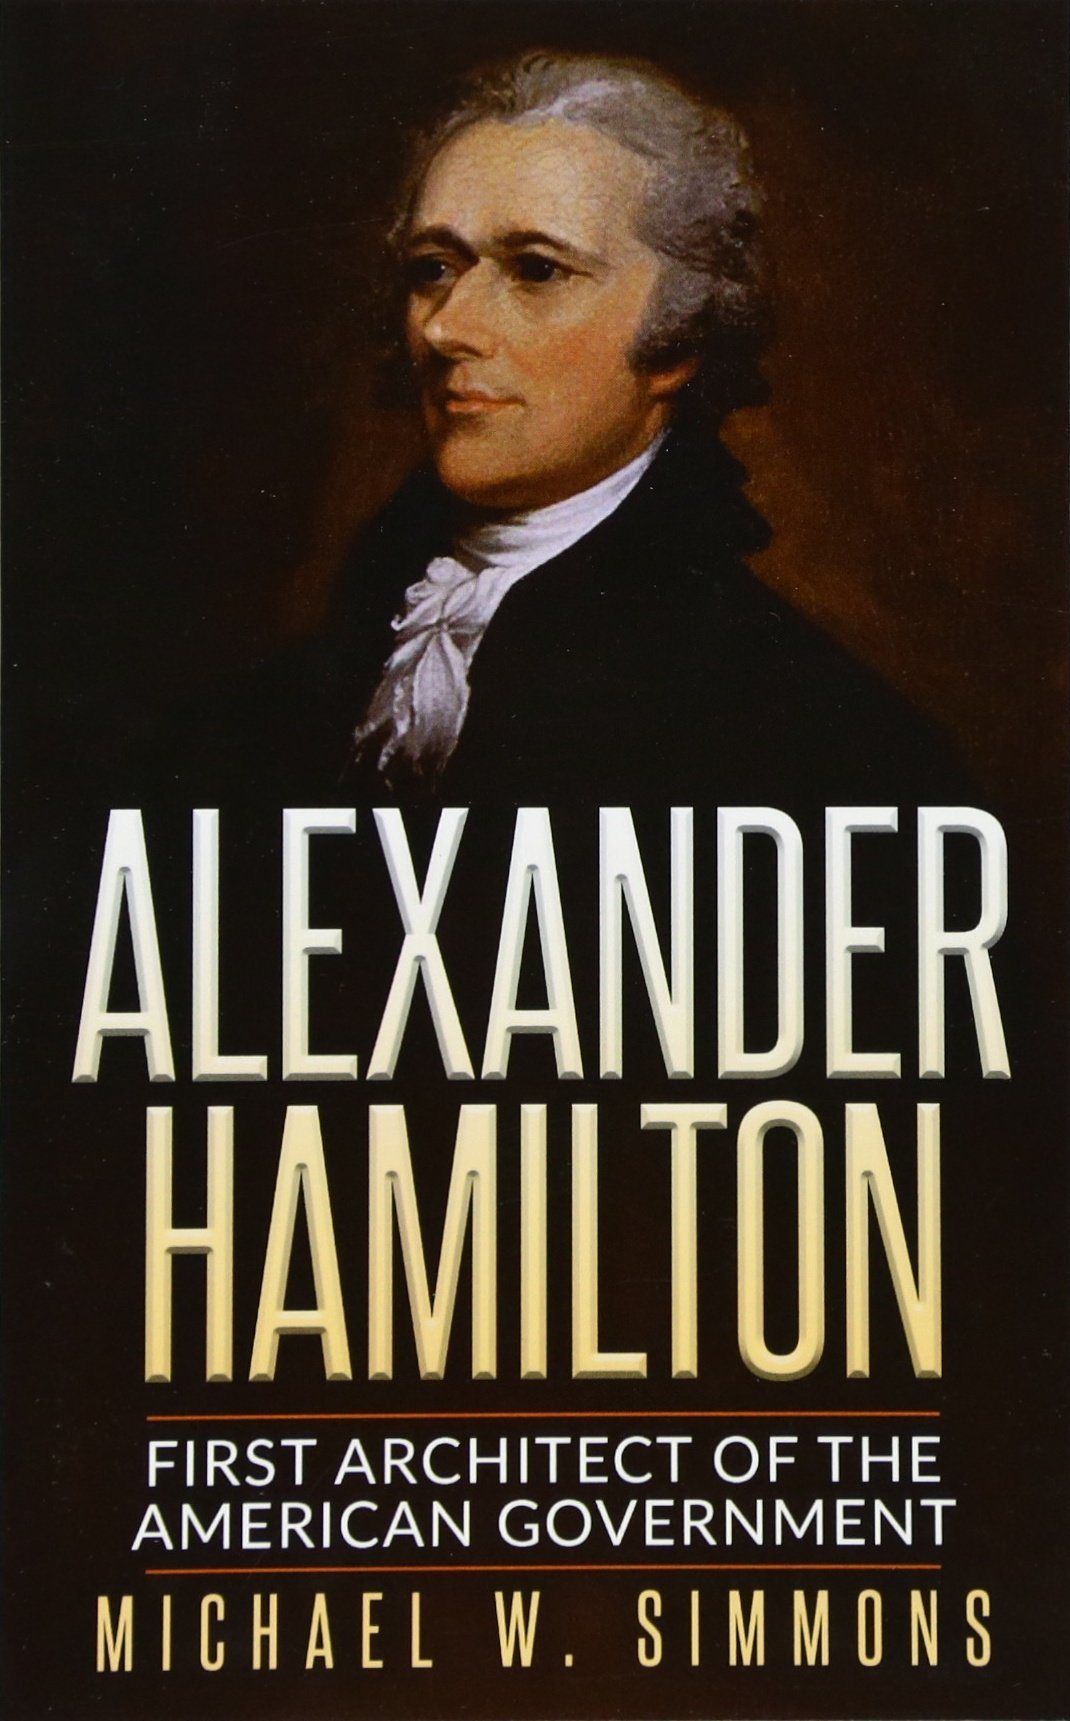 alexander-hamilton-first-architect-of-the-american-government